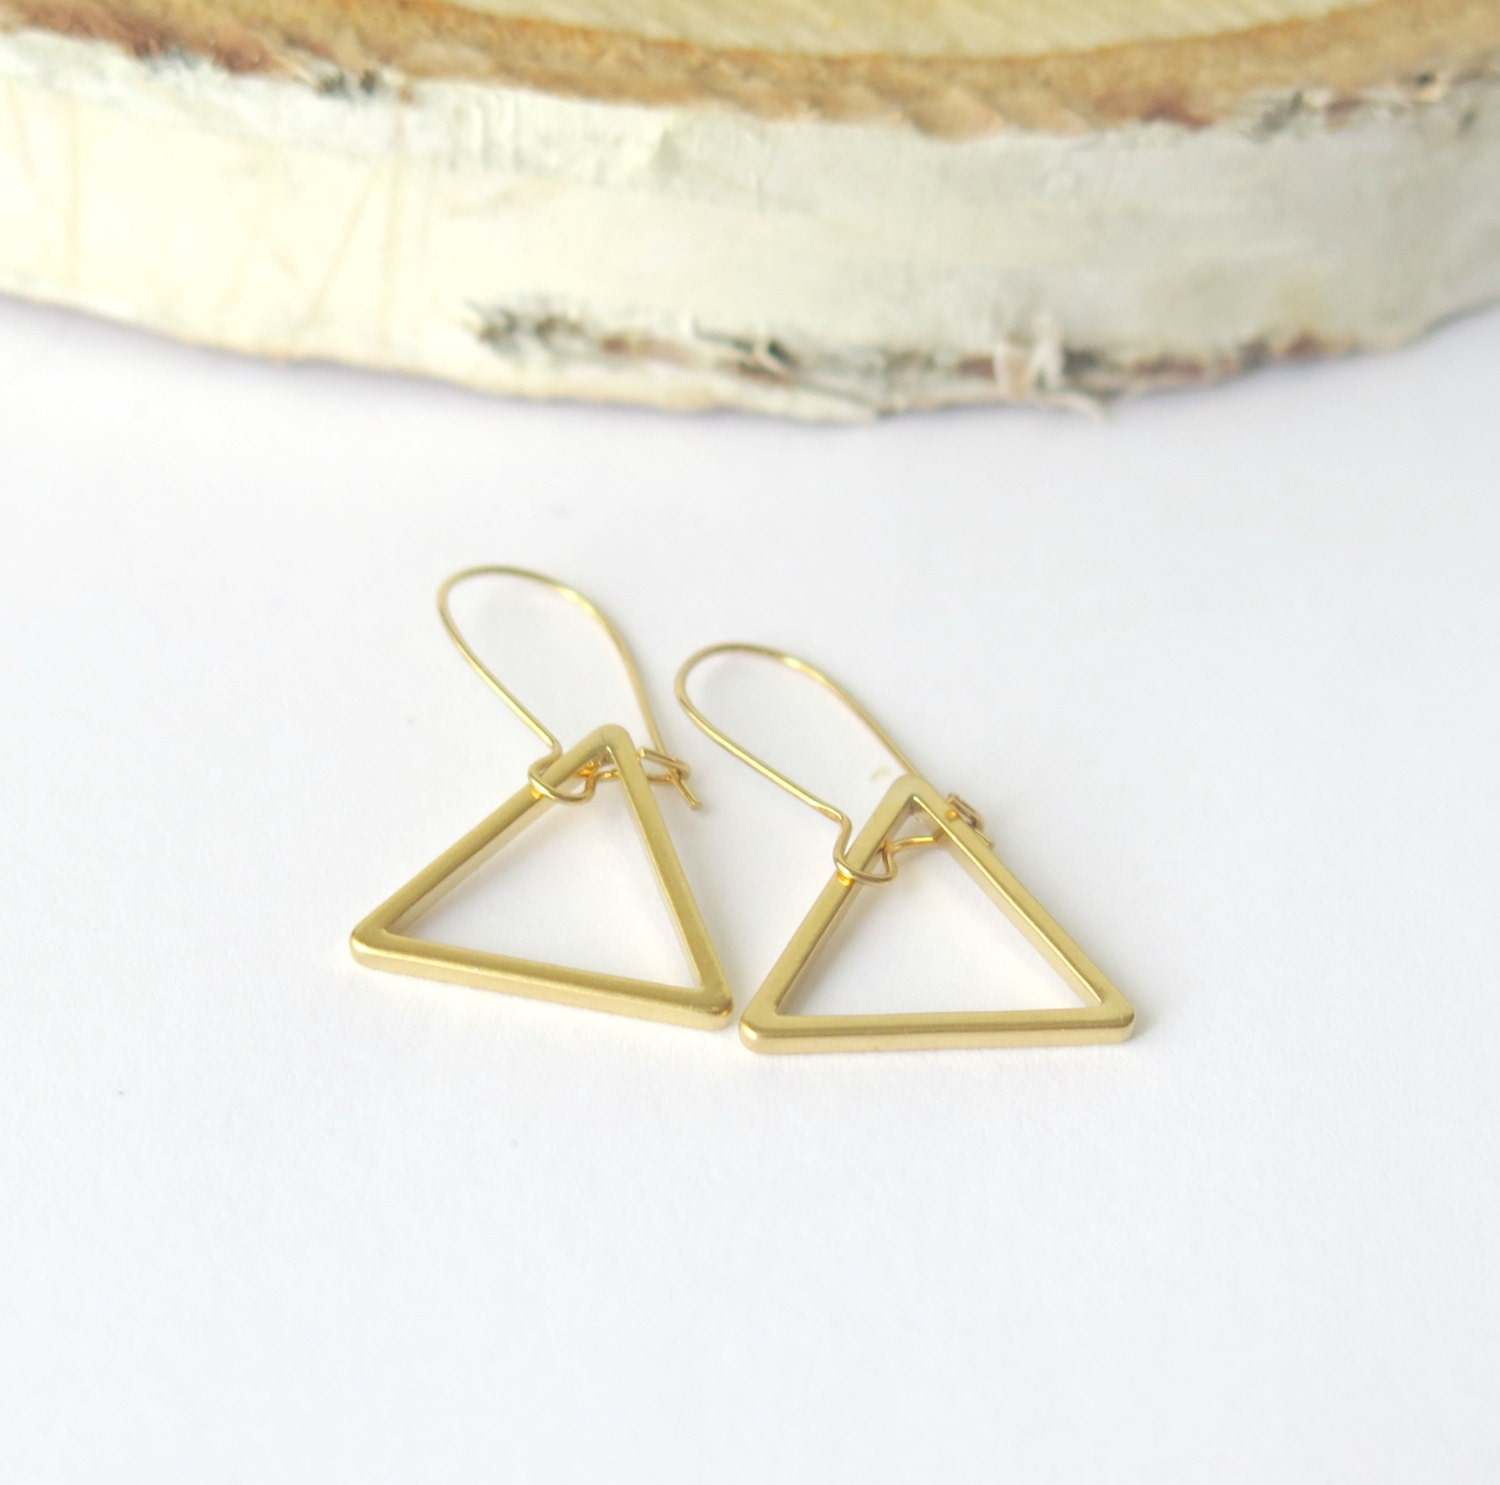 Triangle Earrings: Sale Gold Triangle Earrings / Dangle By Theblackstarboutique